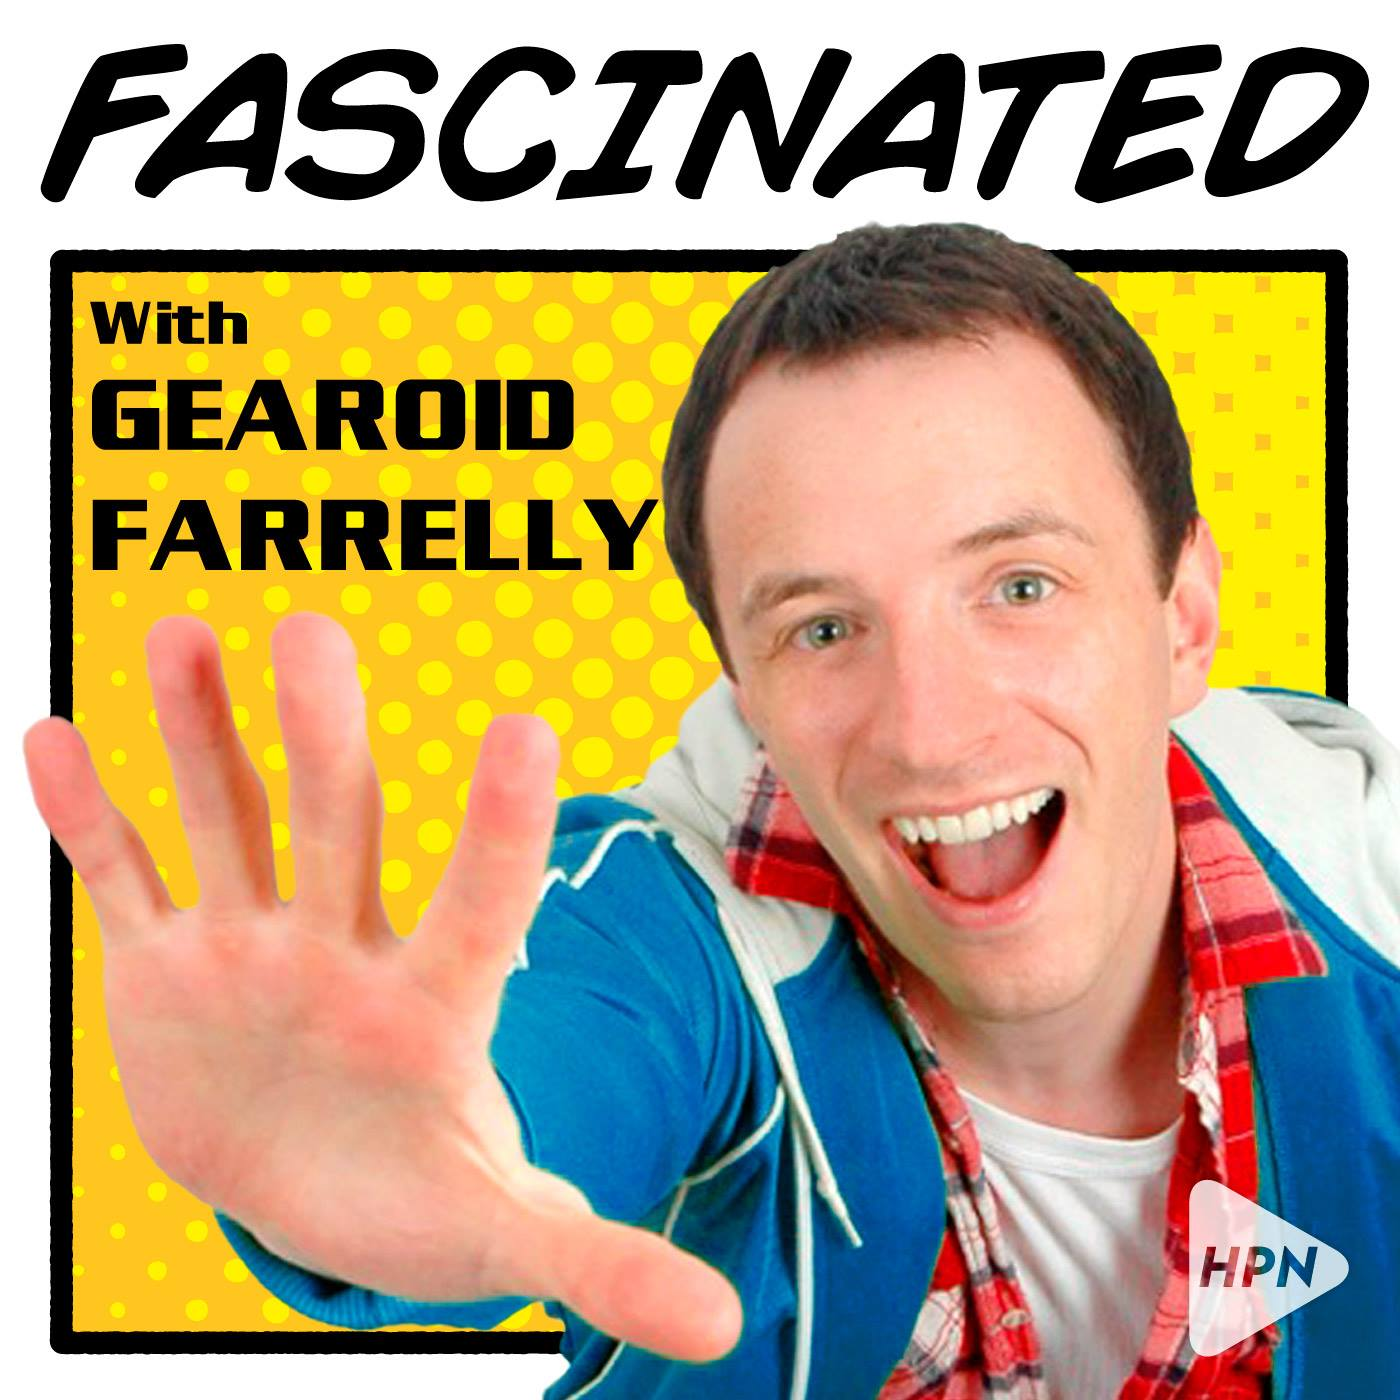 Fascinated podcast with Gearoid Farrelly, HPN, comedy, culture, interviews - HeadStuff.org